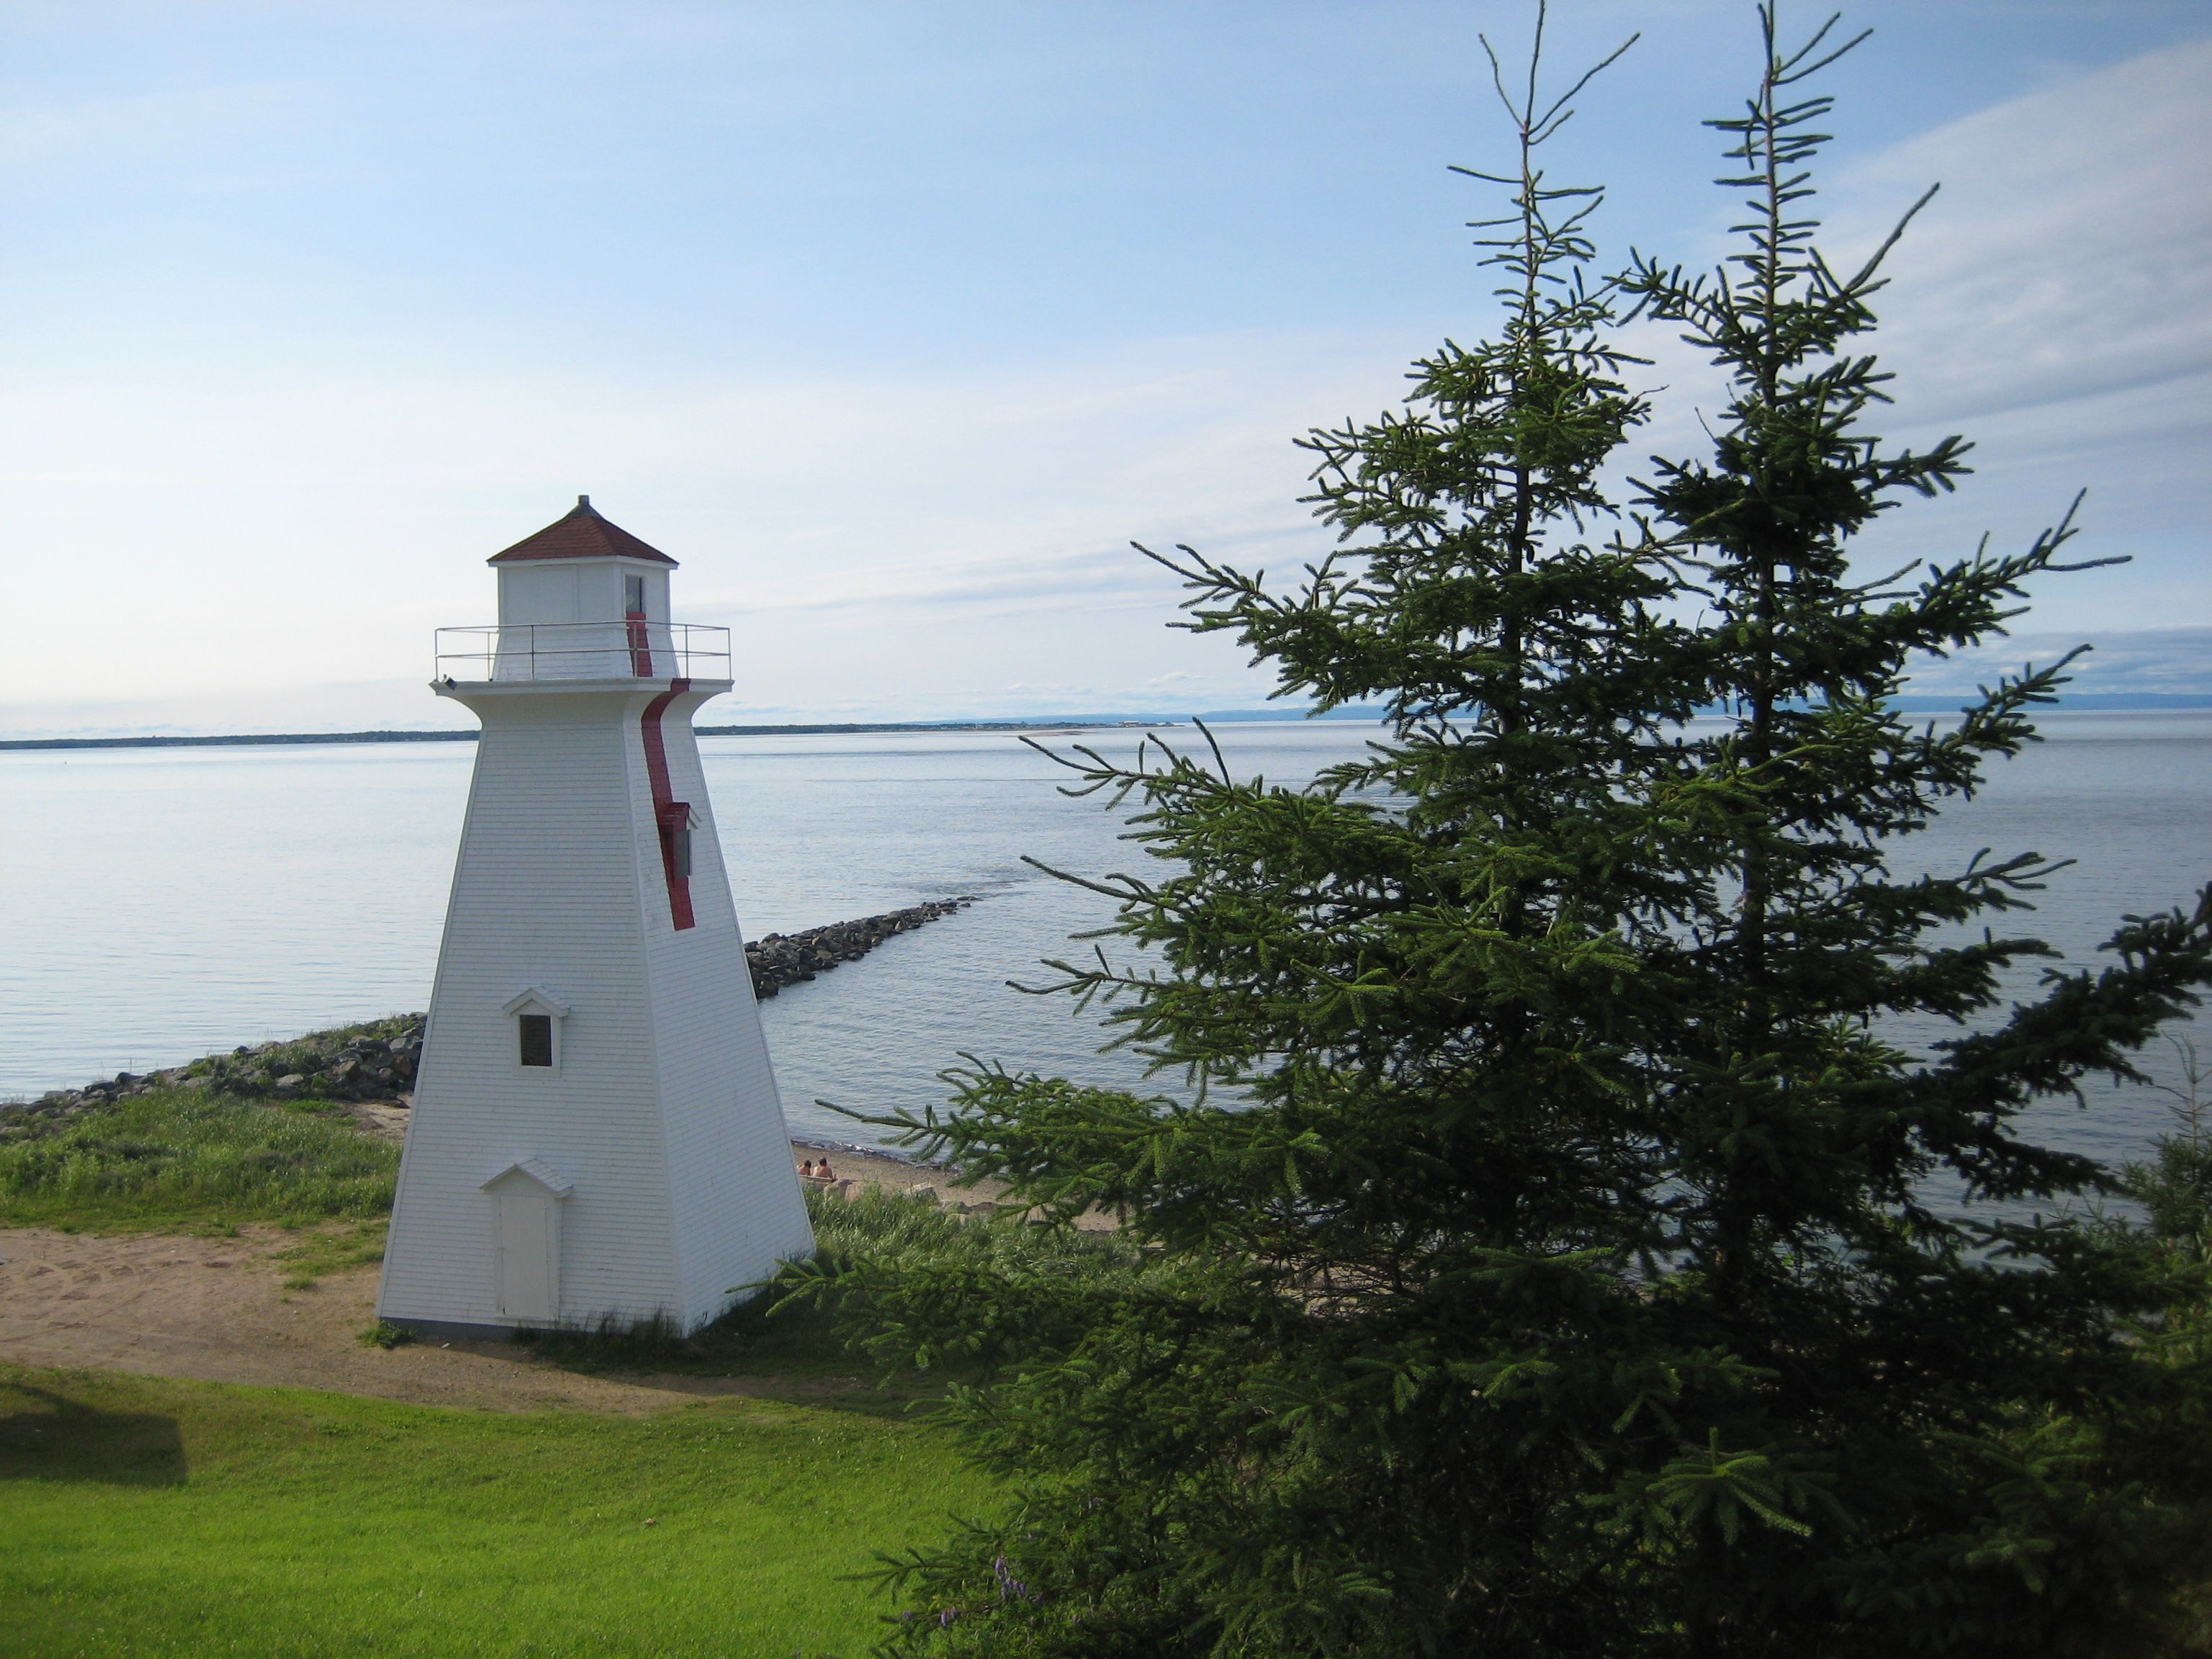 Caraquet, NB (Canada) | Outdoor, Outdoor decor, Favorite ... on Backyard Decor Canada id=58801